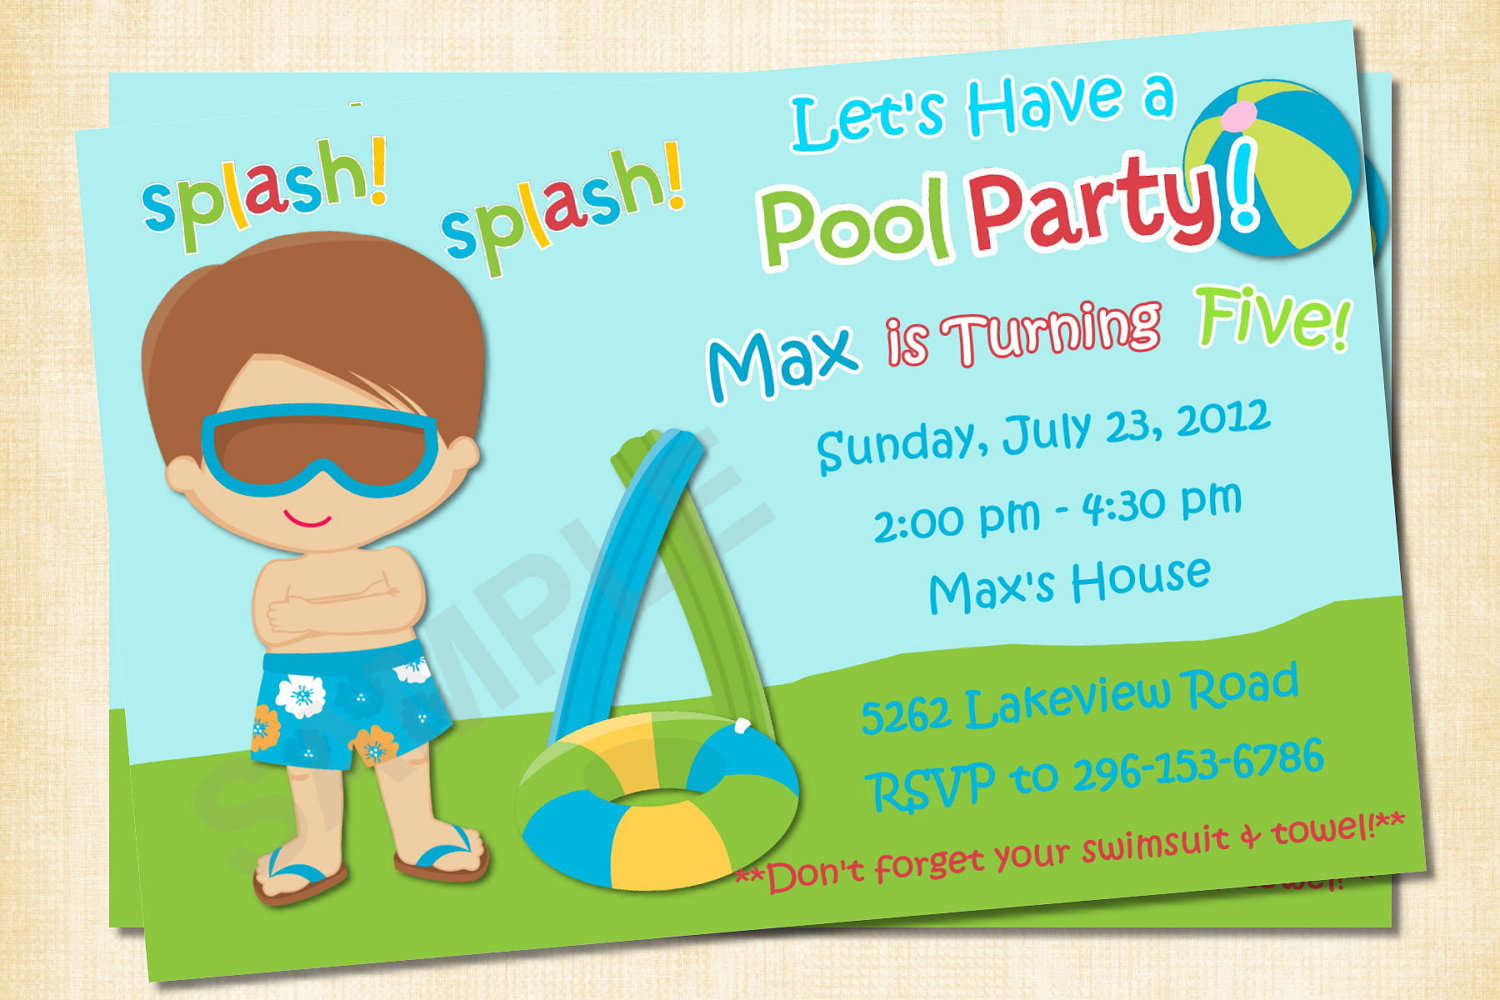 free printable birthday invitation templates for boys ; Free-Printable-Pool-Party-Birthday-Invitations-For-Boys